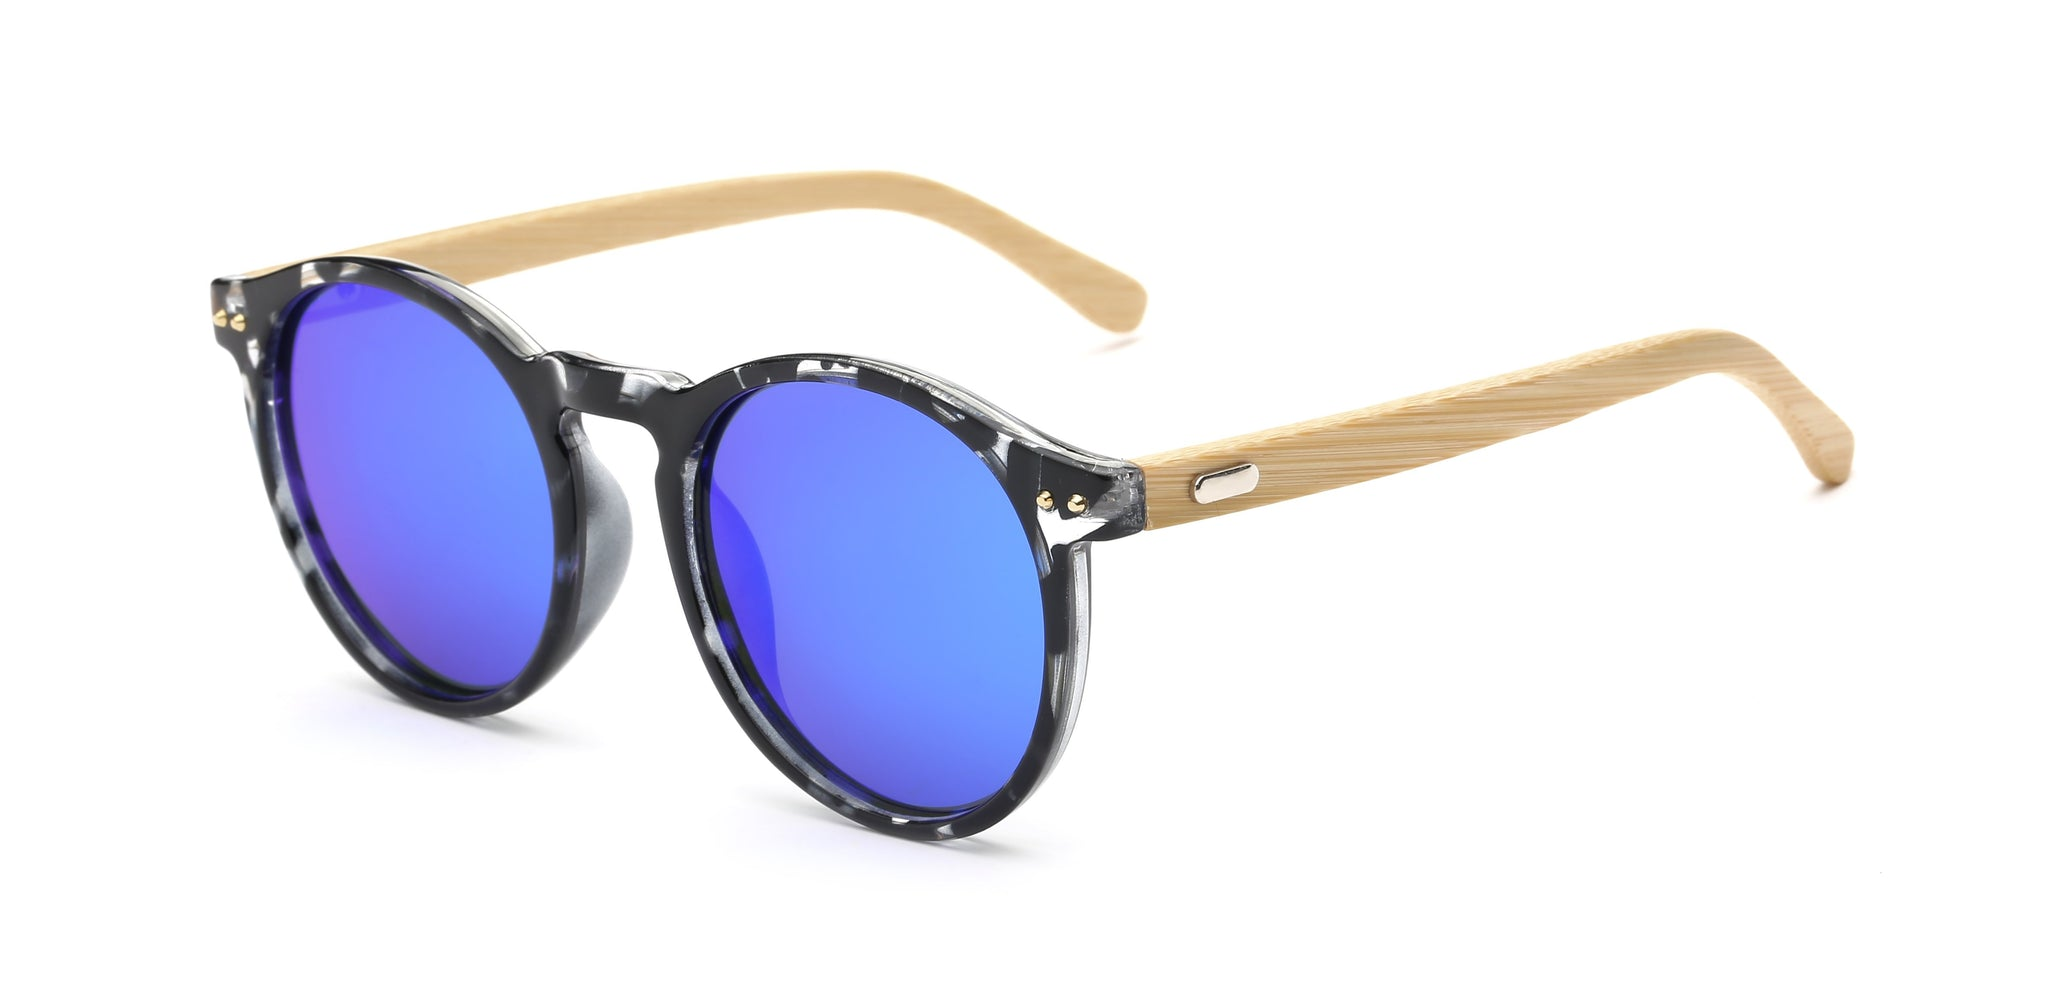 8127-M - Retro Round Mirrored Dark Lens Wood Sunglasses